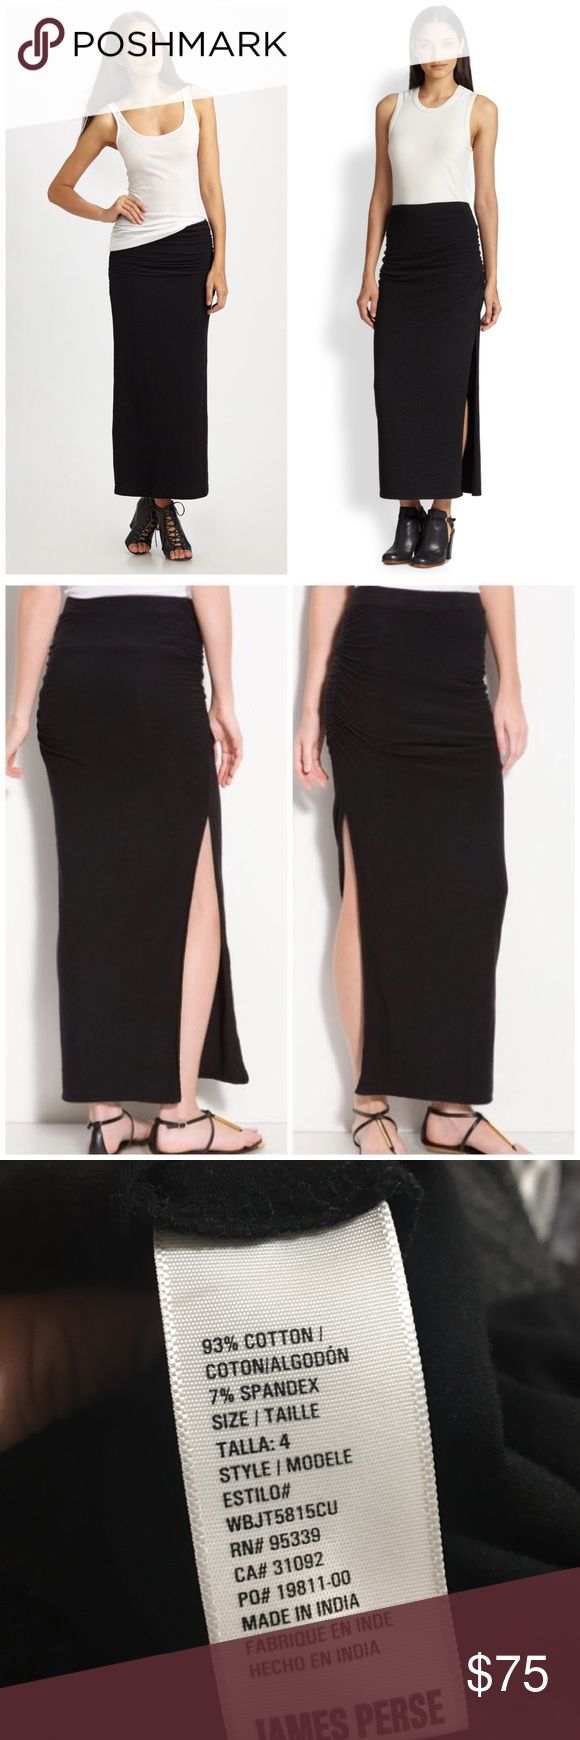 James Perse Ruched Split-side Jersey Maxi Skirt Excellent condition. High side slit. 93% cotton, 7% spandex. Size 4 - which is a 12. Very stretchy skirt. Offers welcome through offer tab. No trades. 10314171501 James Perse Skirts Maxi